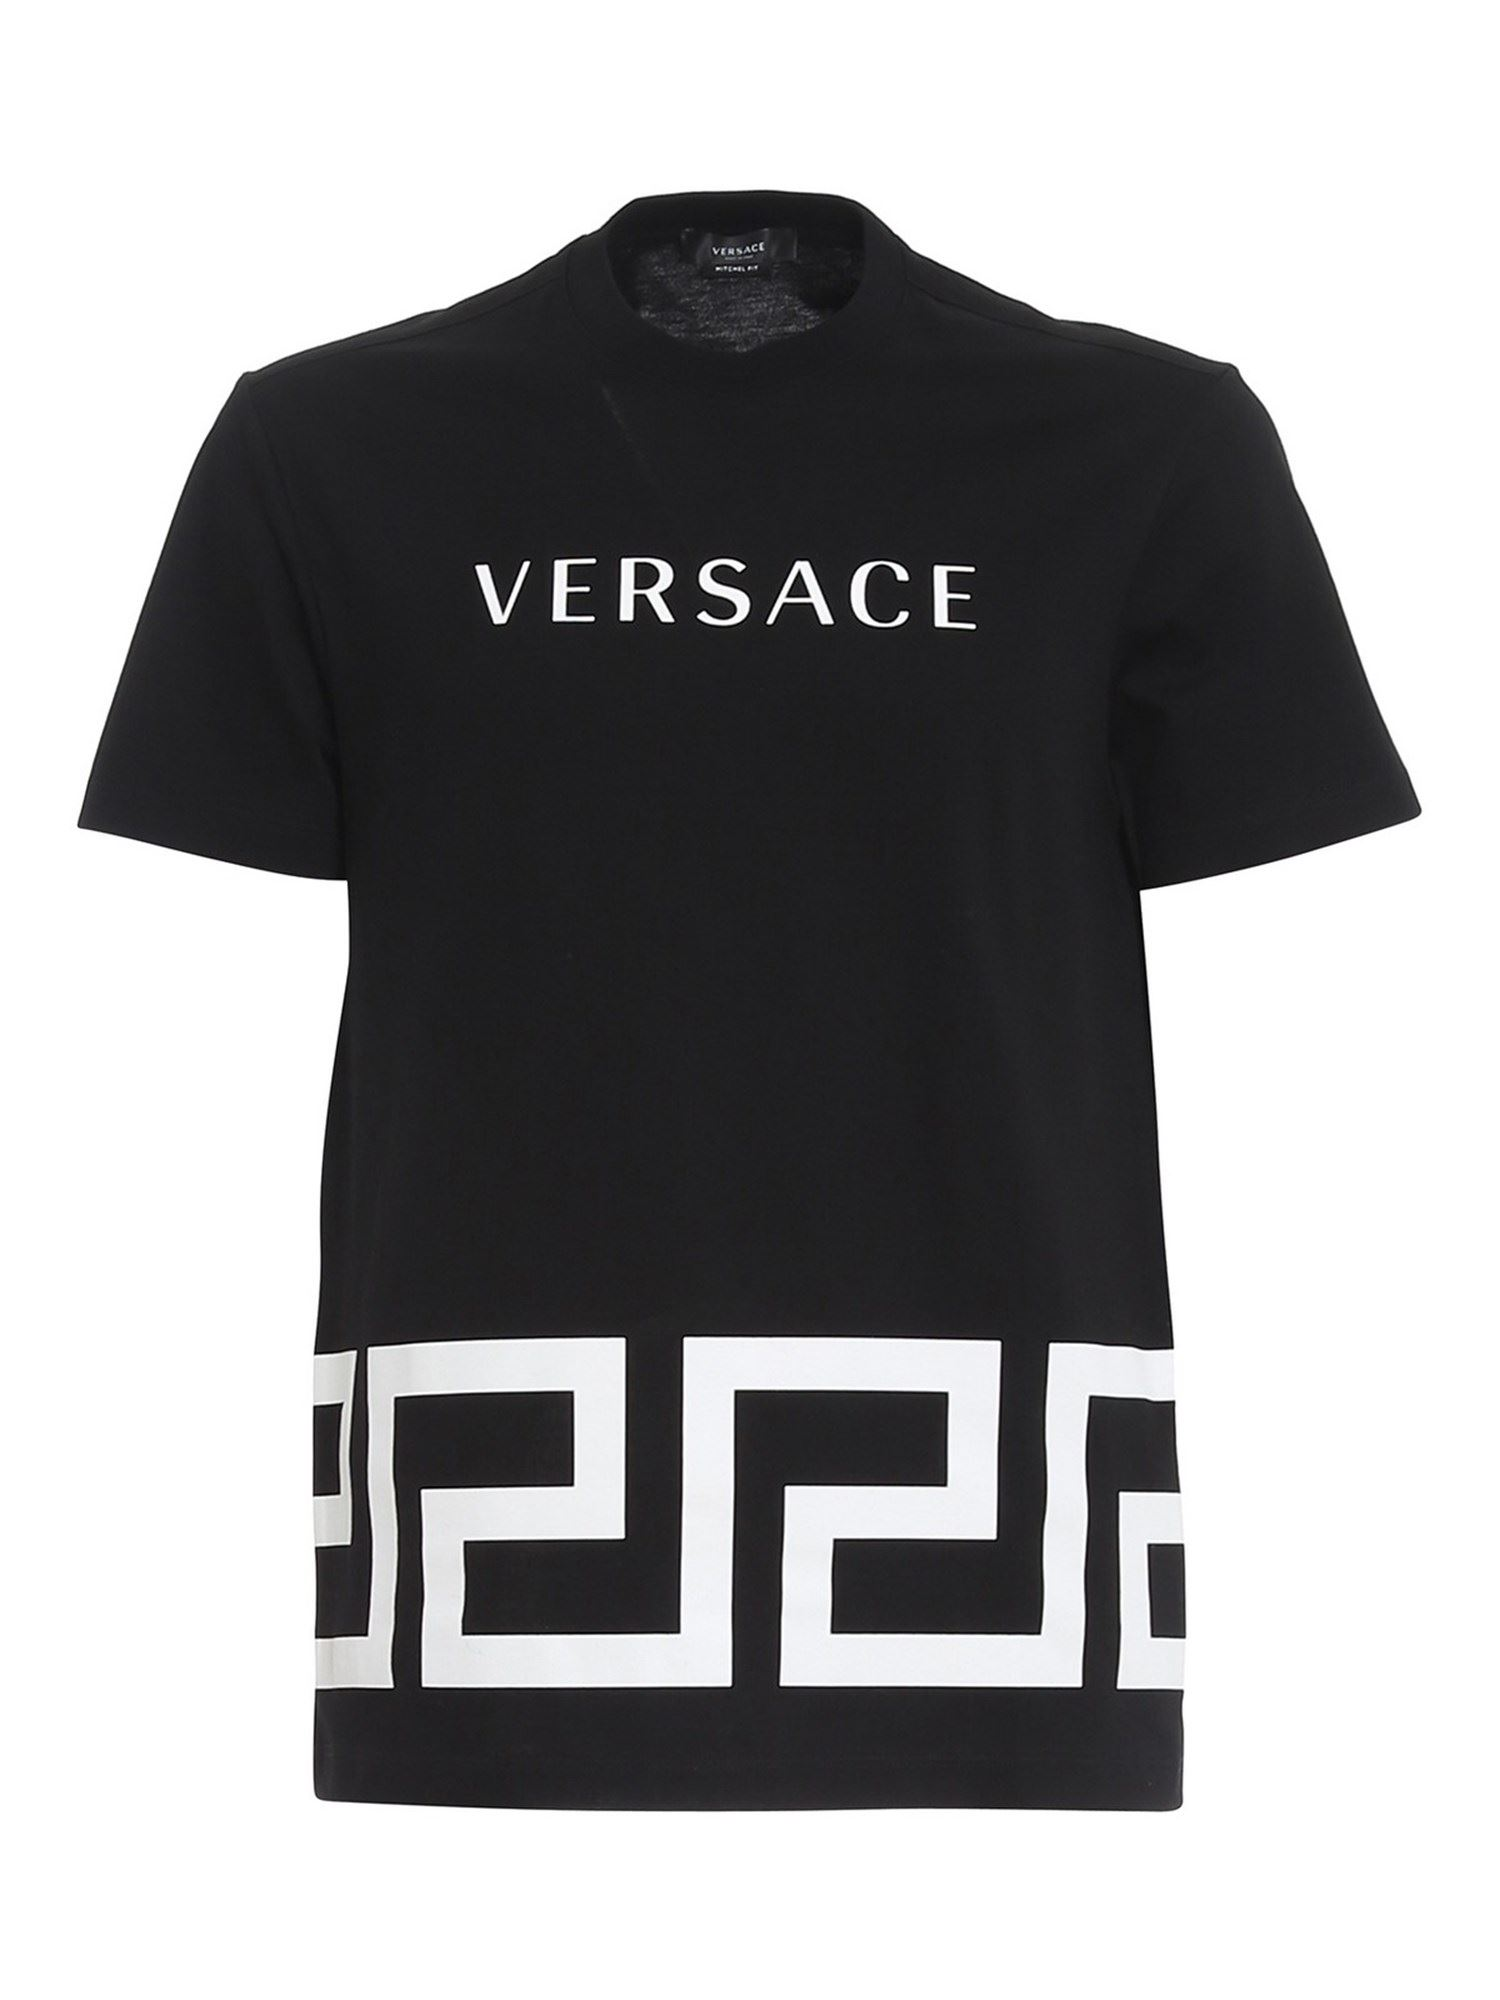 Versace MOSAIC PRINTED T-SHIRT IN BLACK